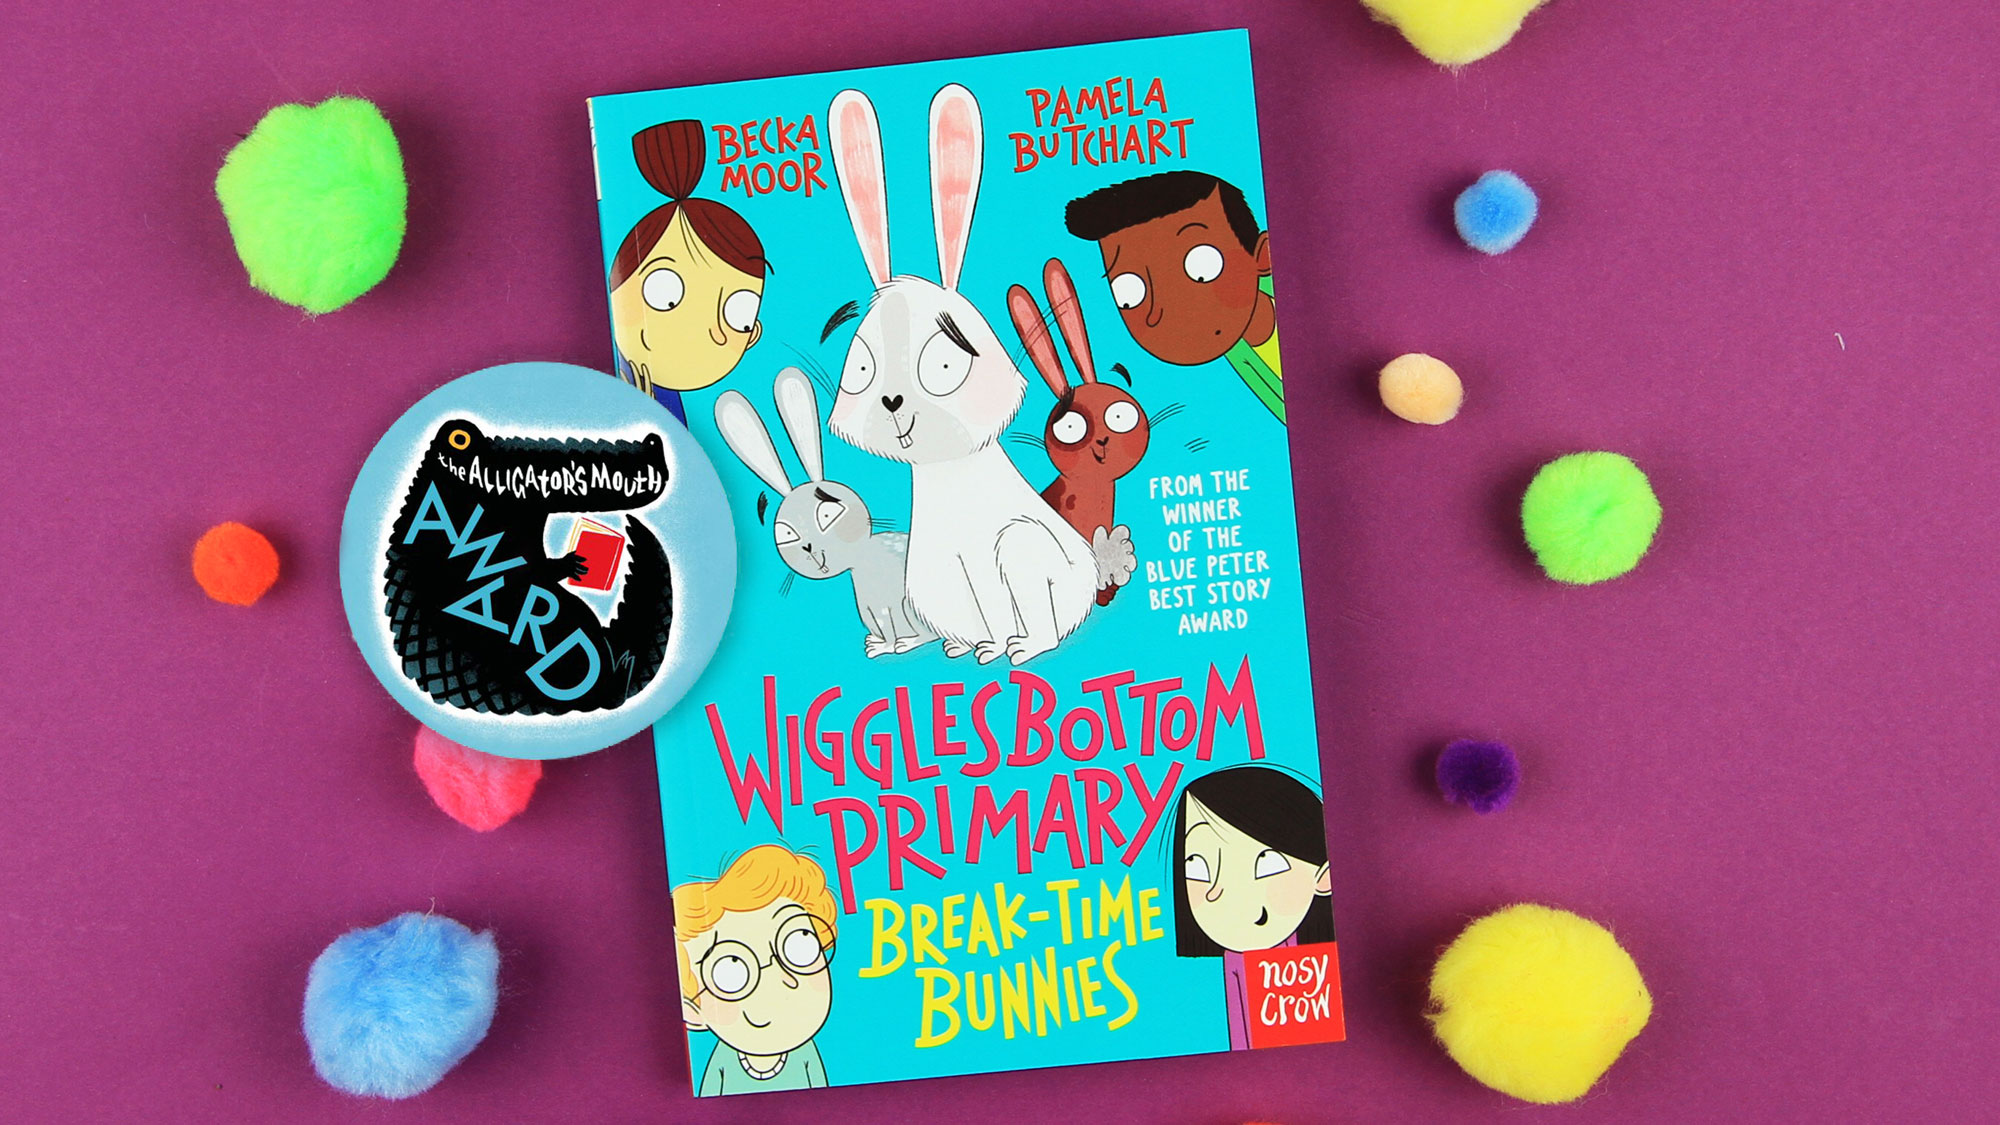 Wigglesbottom Primary: Break-Time Bunnies longlisted for the 2021 Alligator's Mouth Award